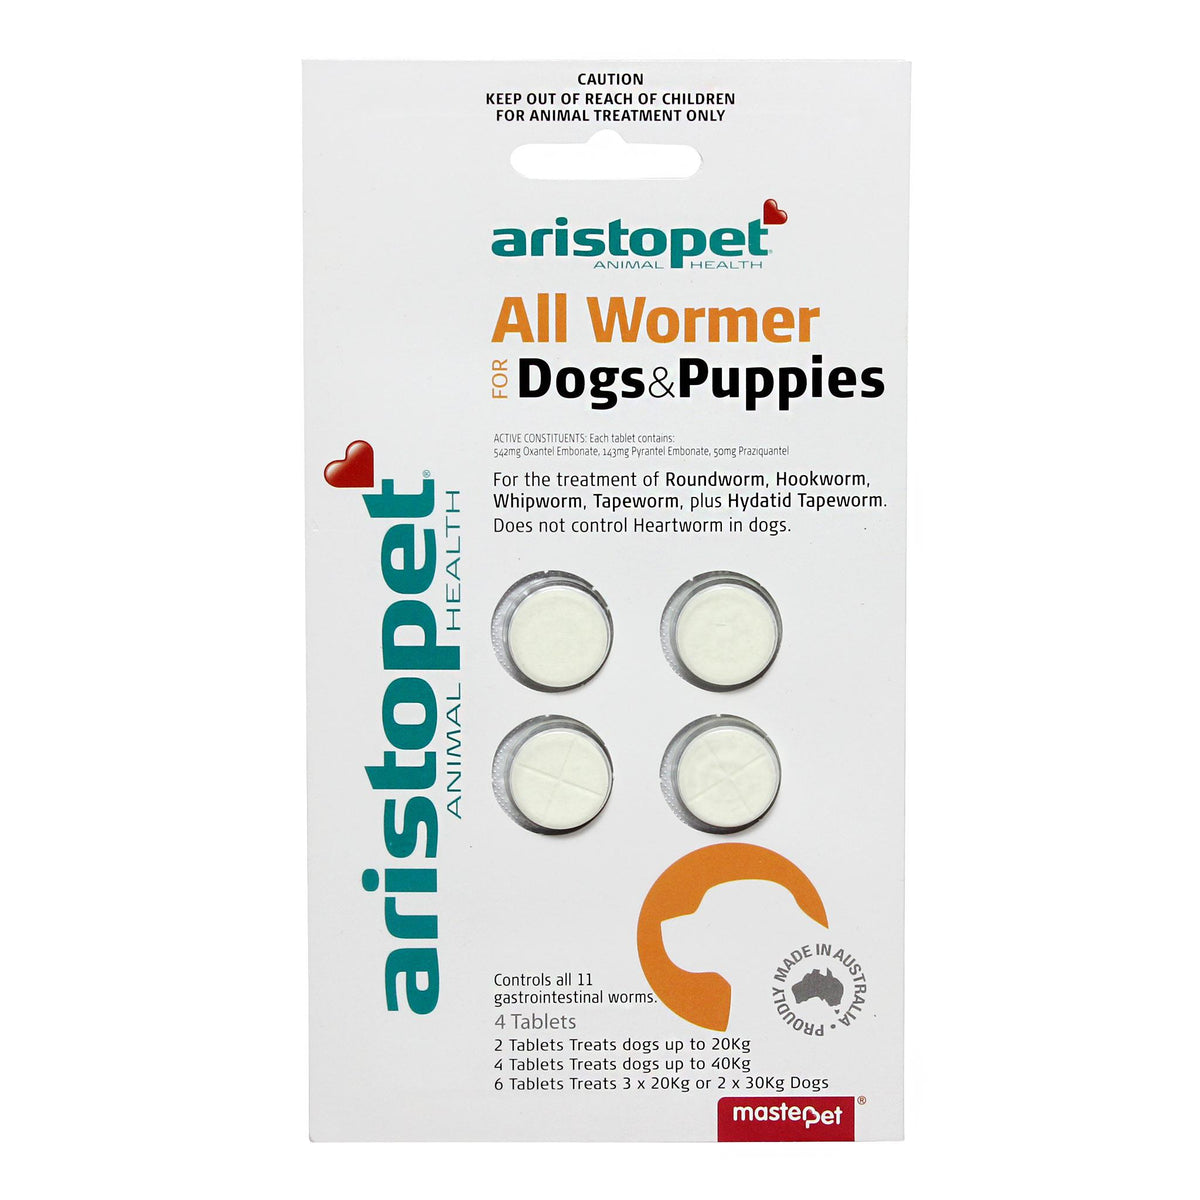 Aristopet All Wormer Tablets for Dogs & Puppies